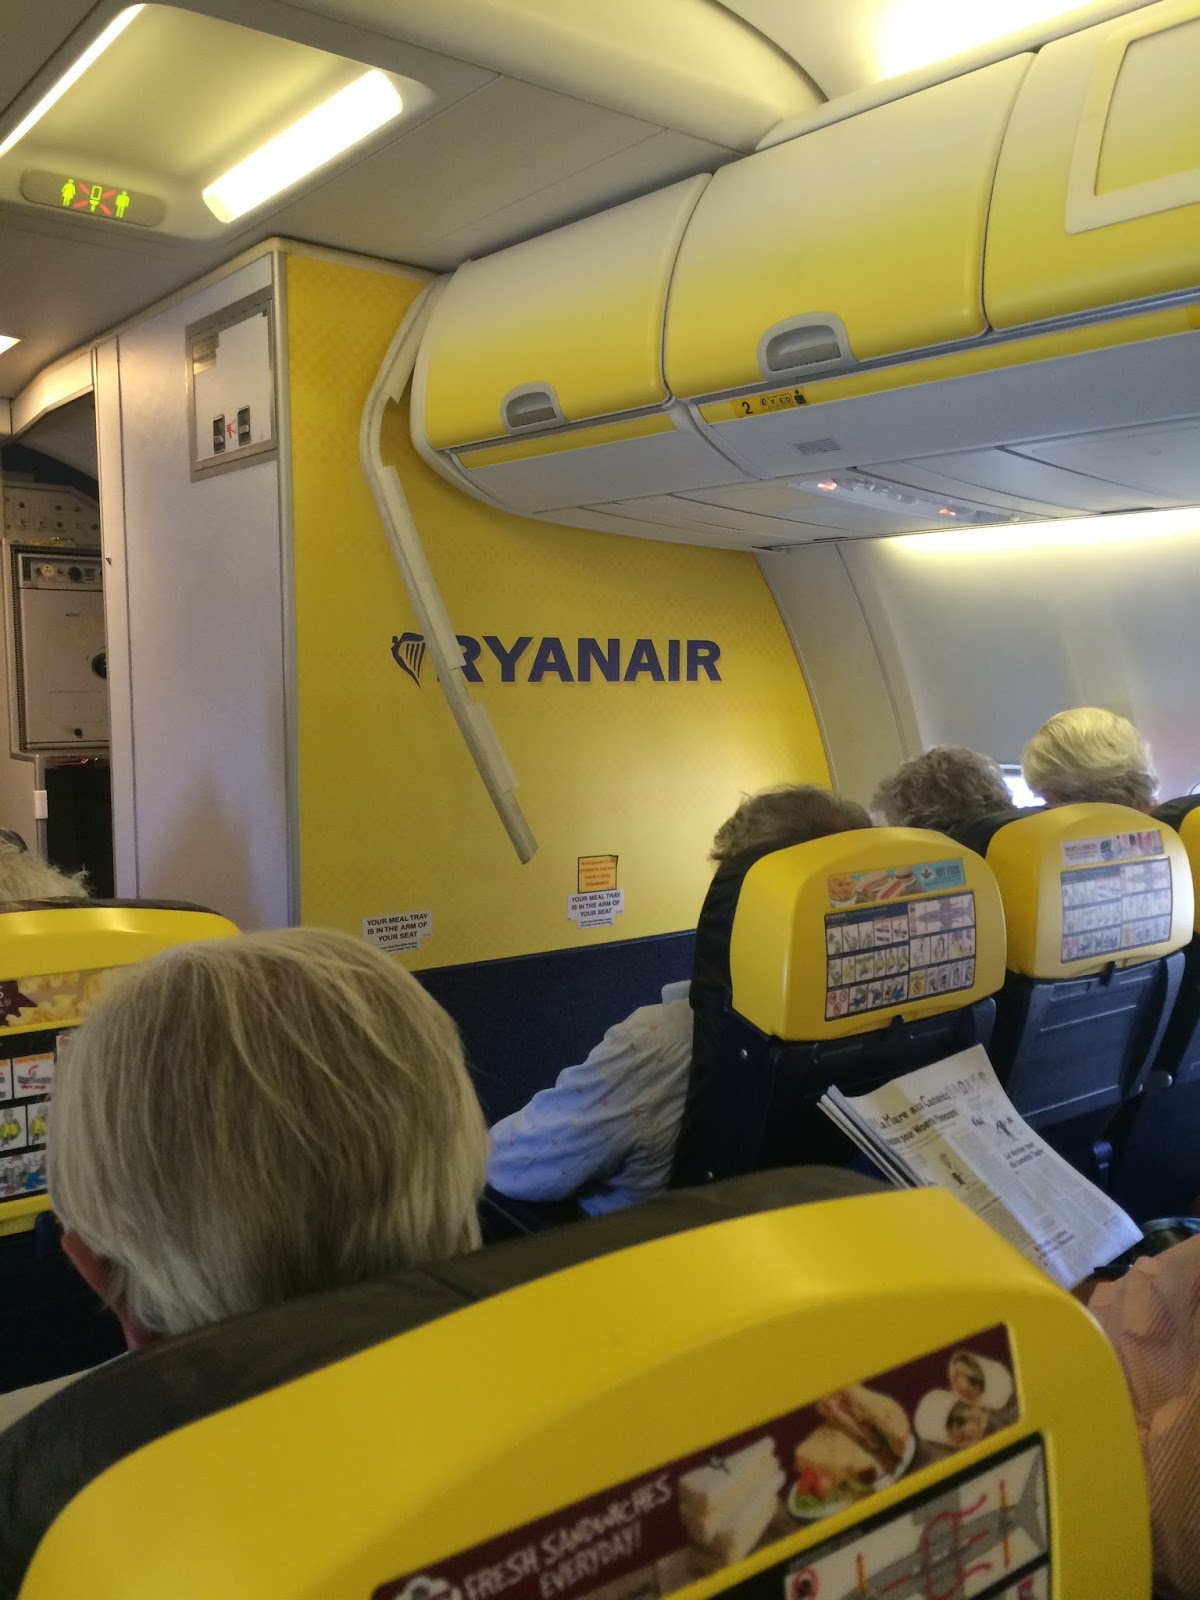 Lovelyliving juillet 2015 for Interieur avion ryanair